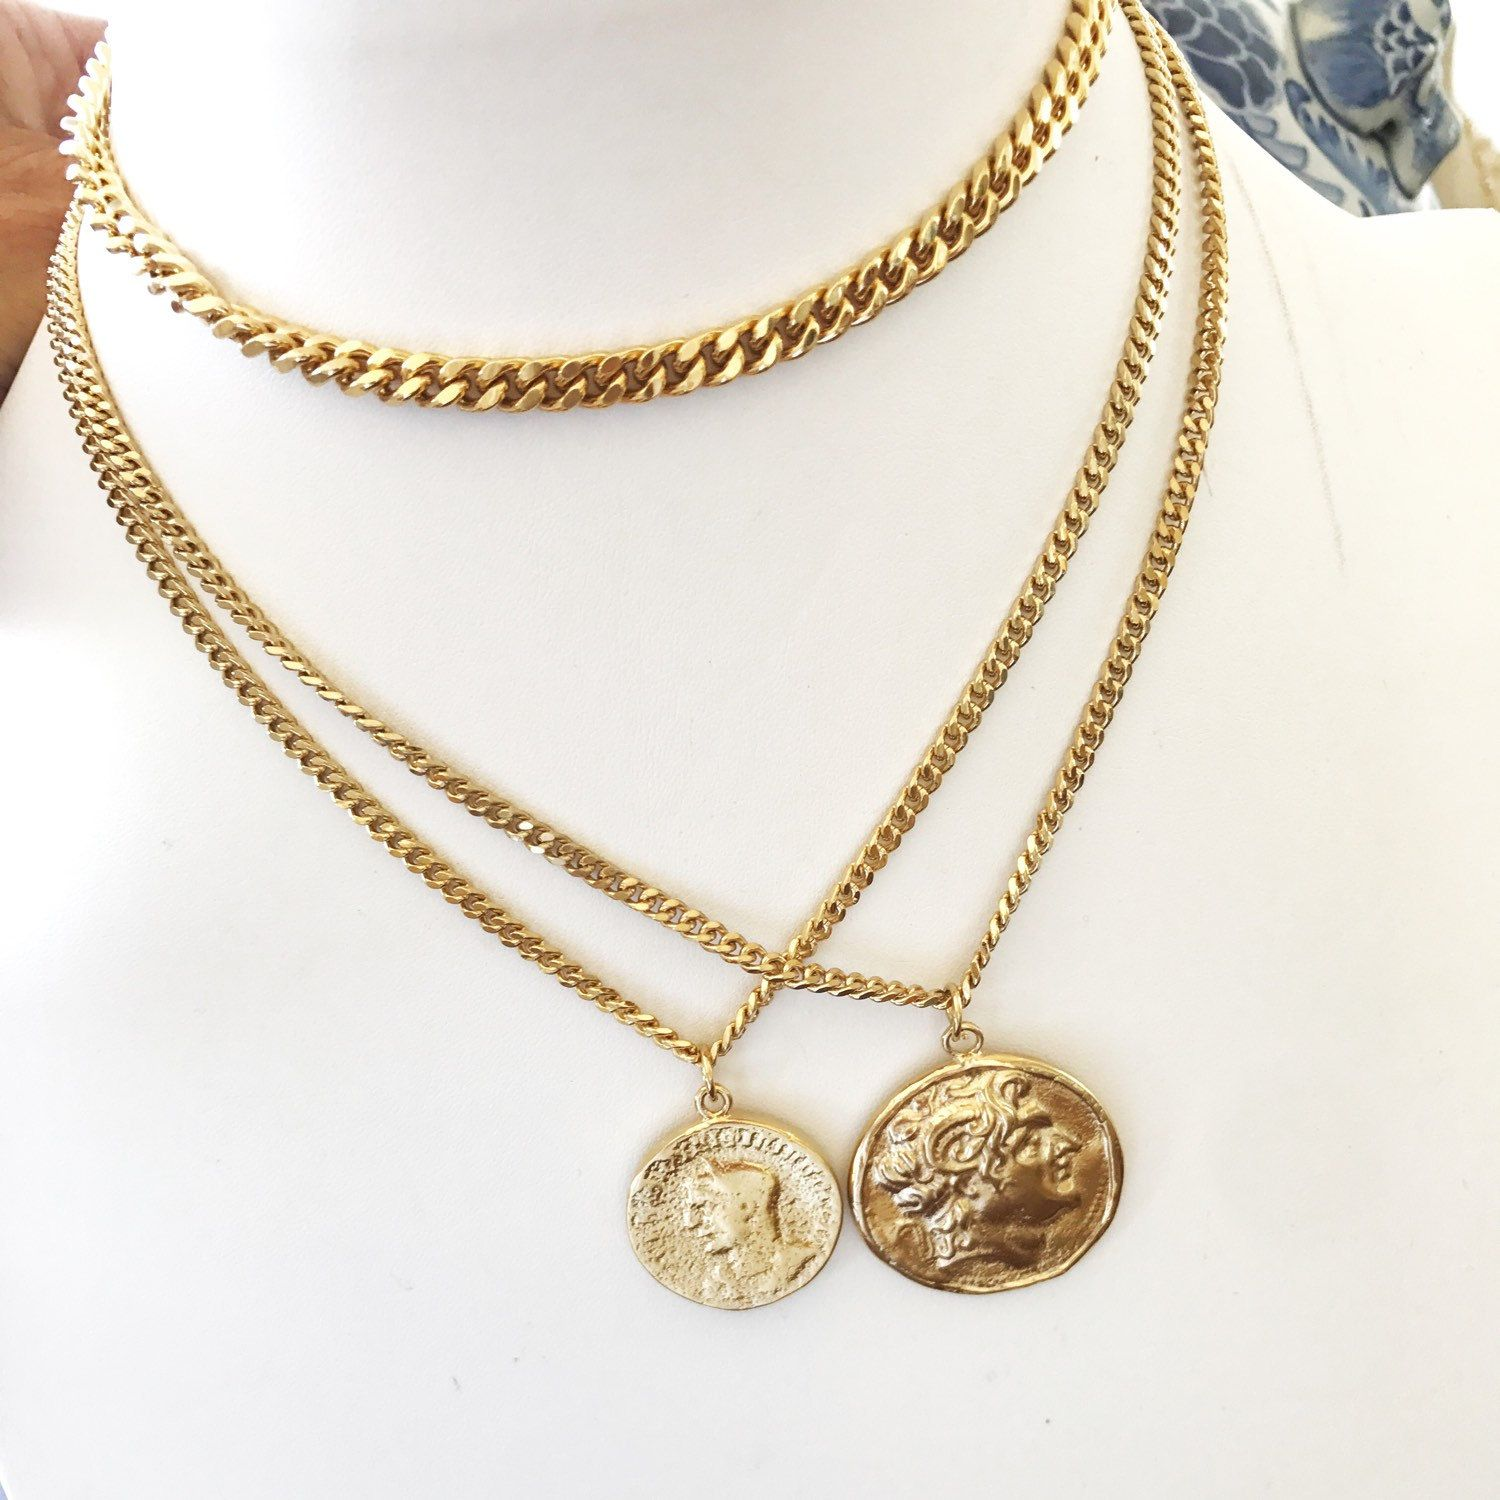 bree medallion sale necklace constantine card shop rebecca plated pamela gold necklaces delicate